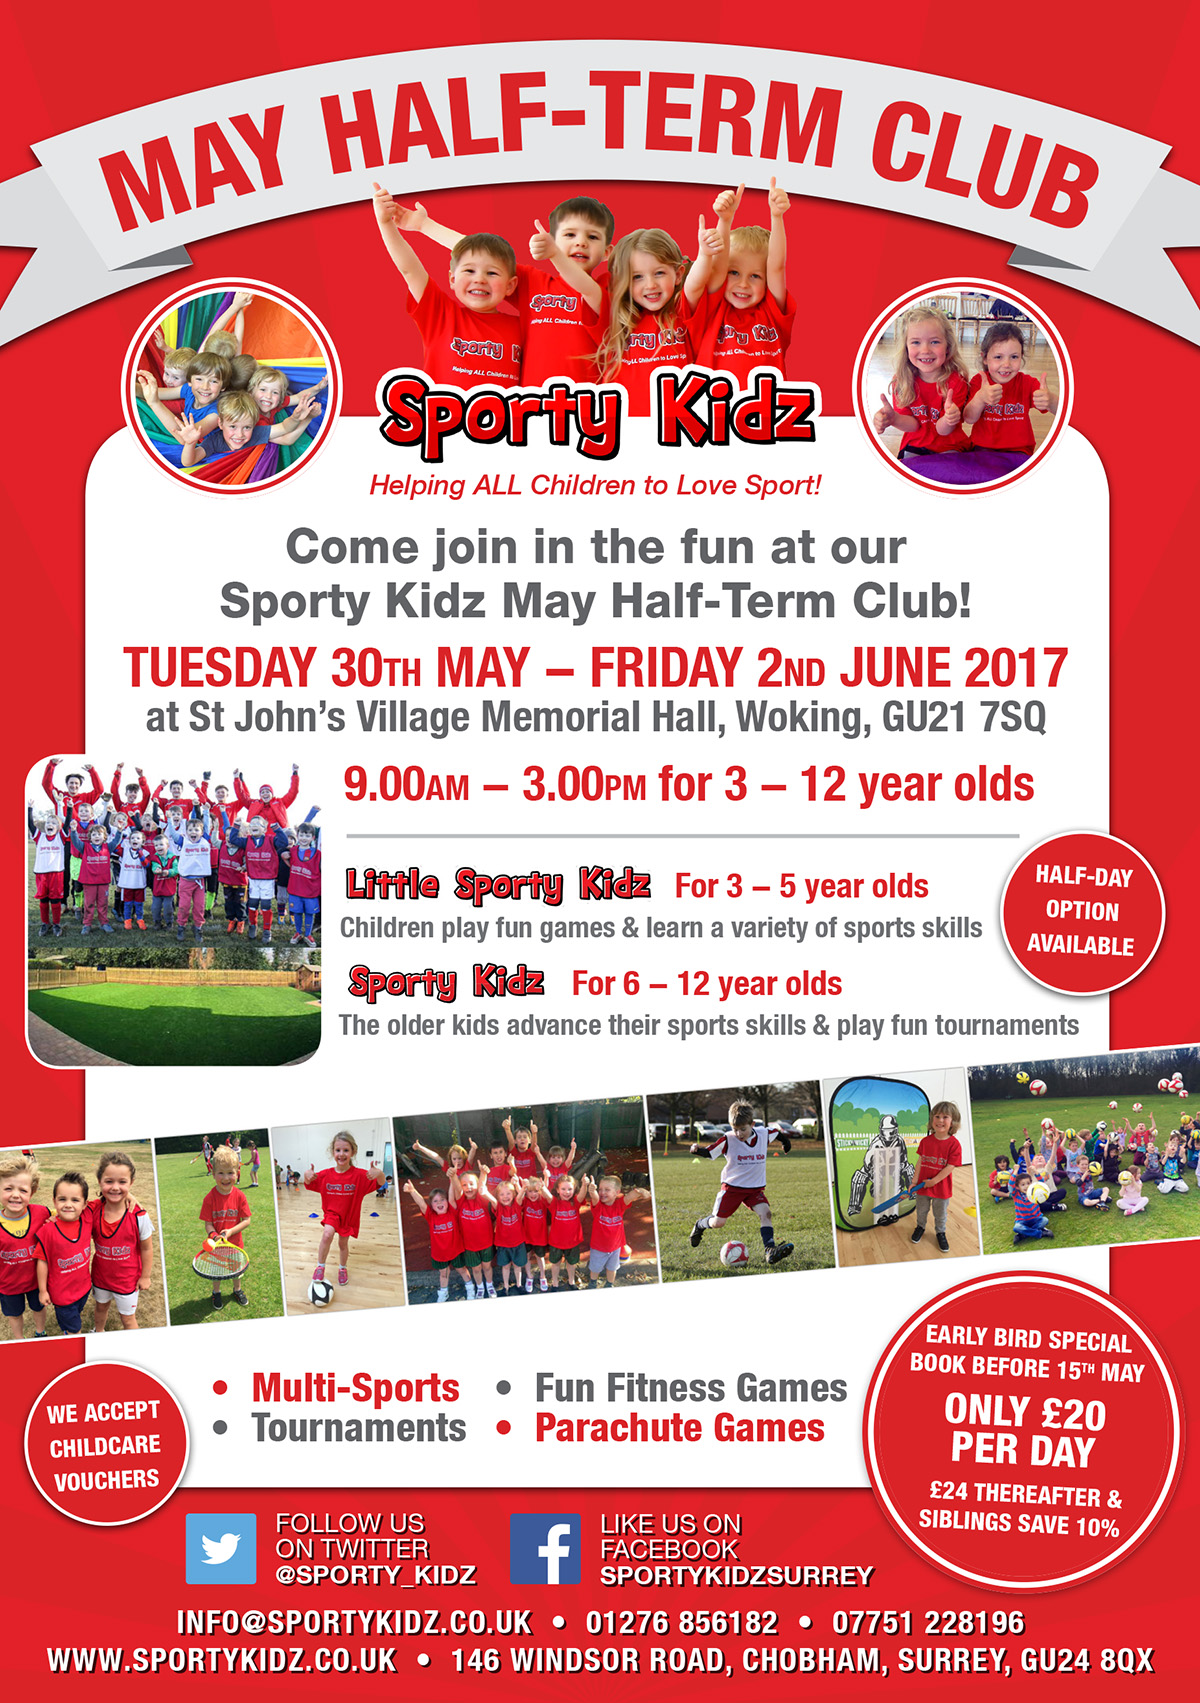 May Half-Term Club in Surrey